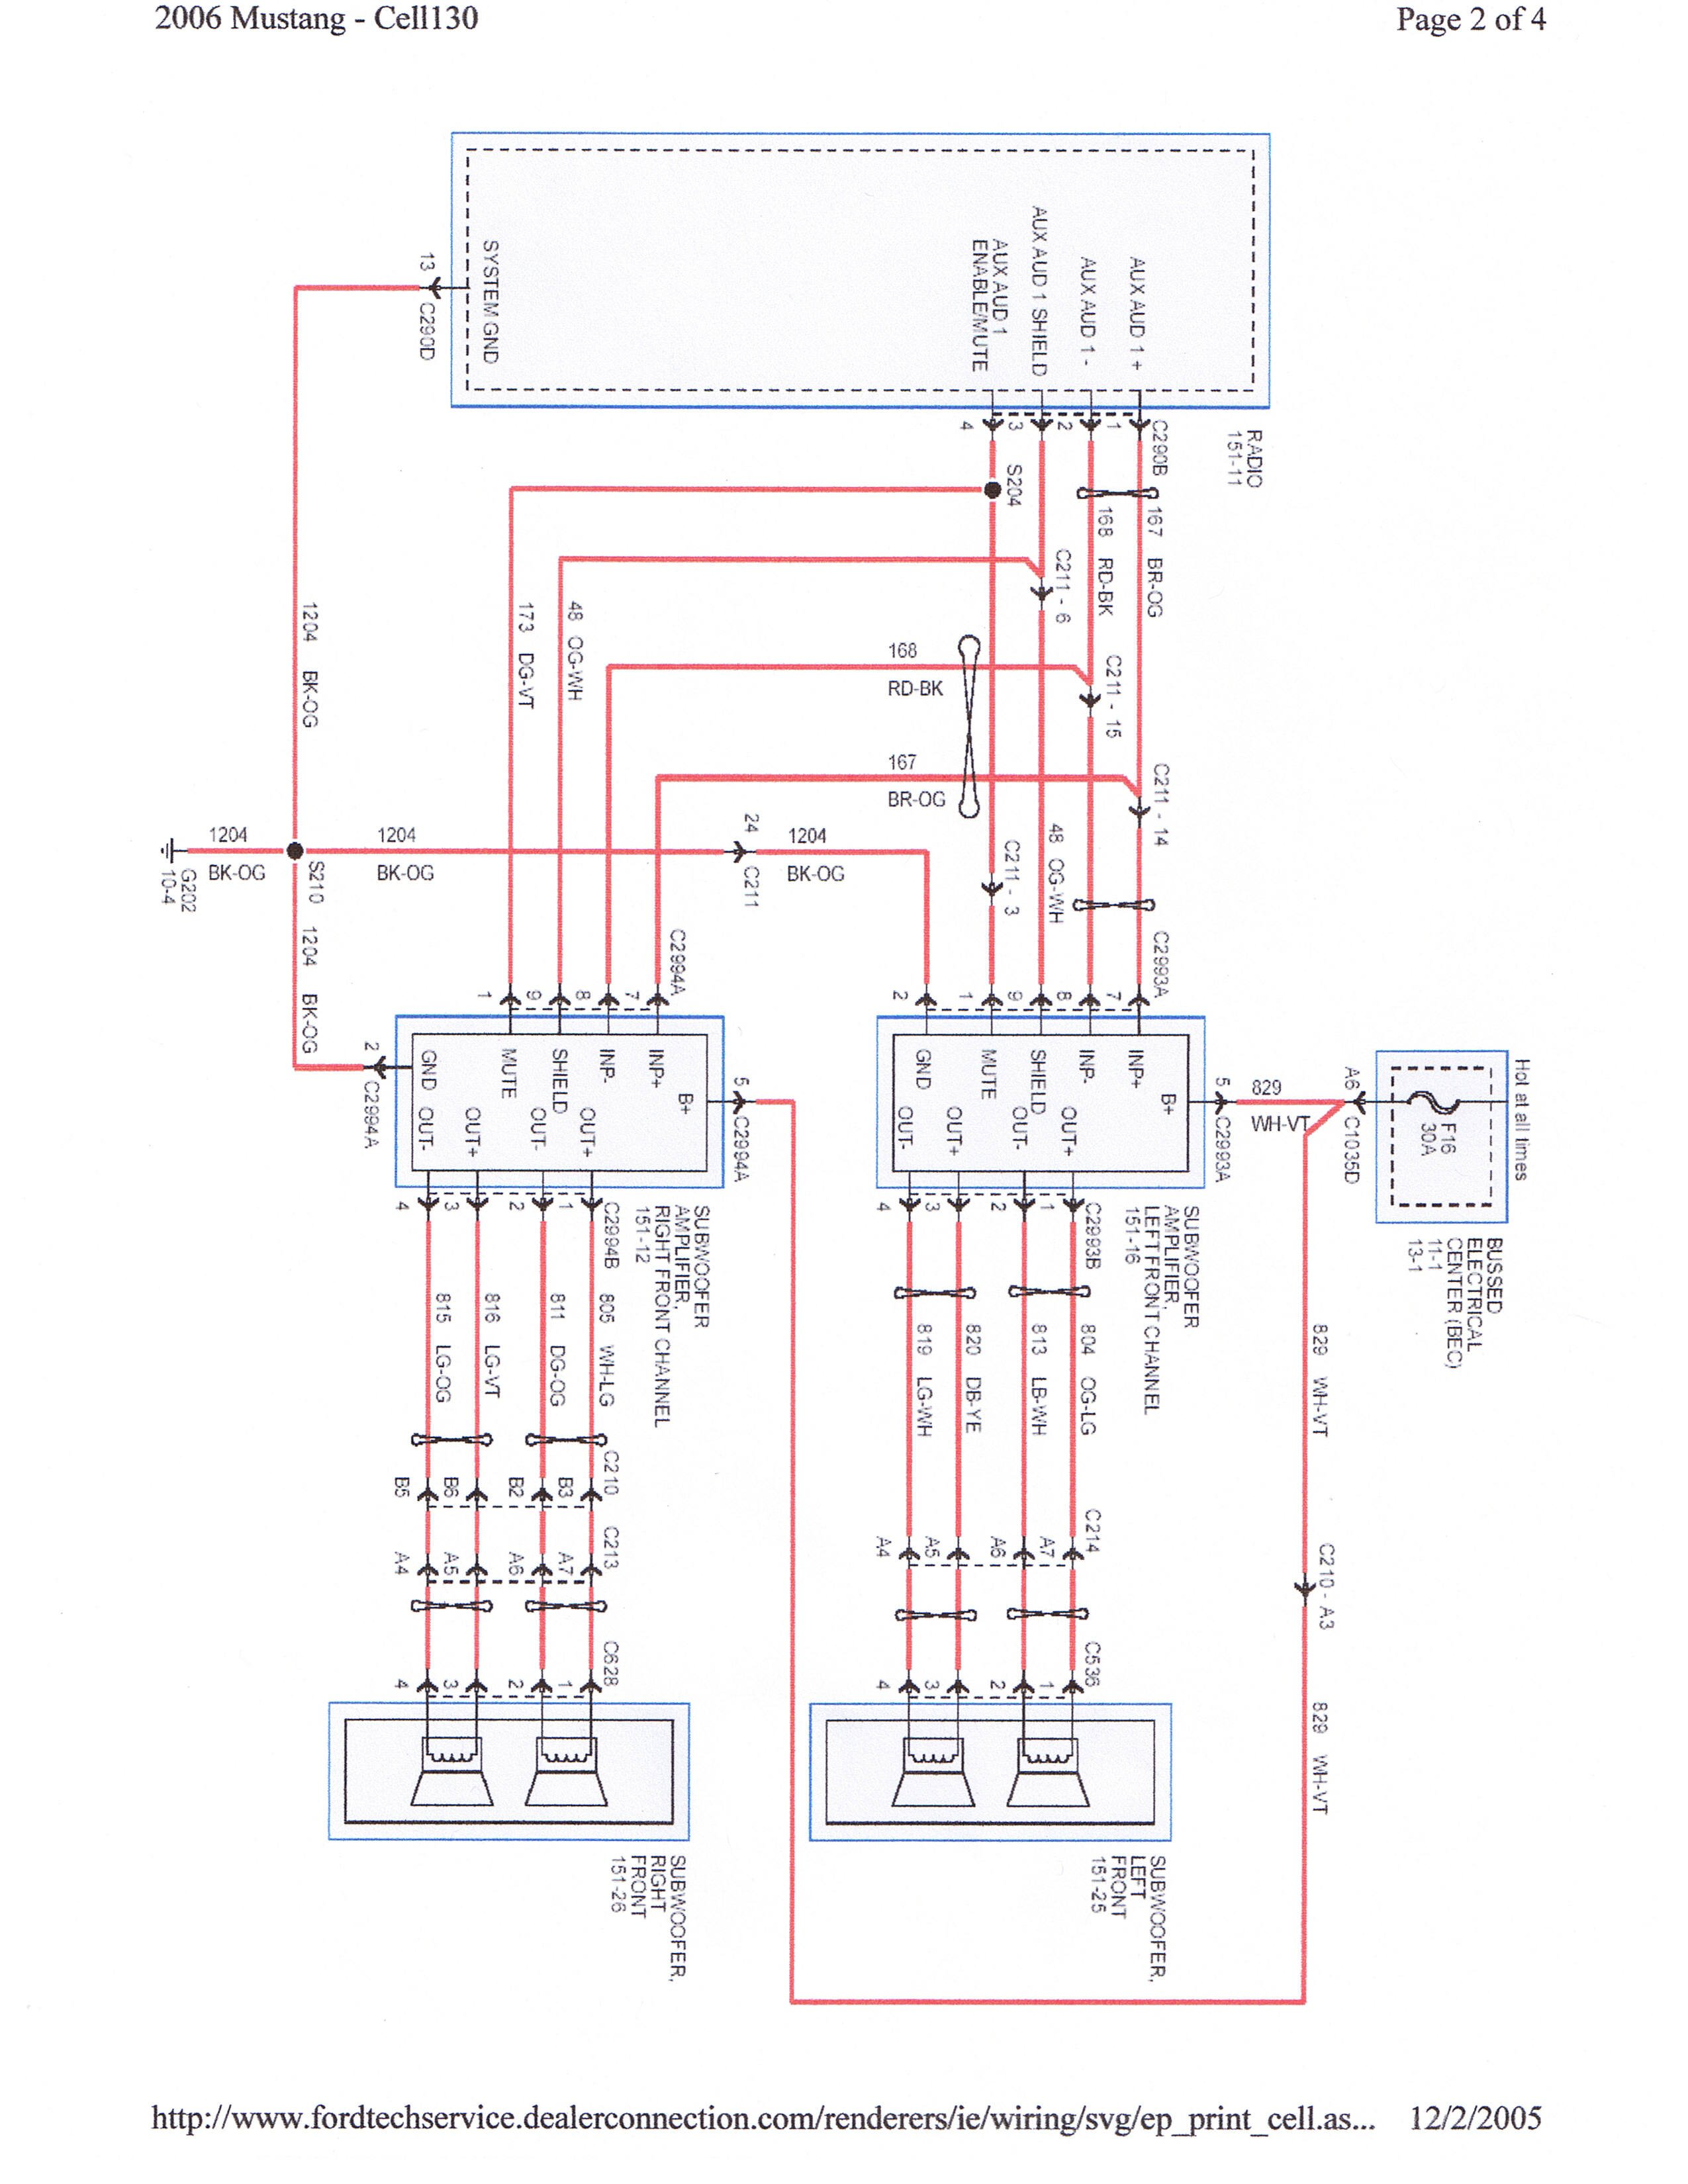 car dome light wiring diagram respiratory system blank to label shaker 500/1000 harness question (subwoofer) - ford mustang forum